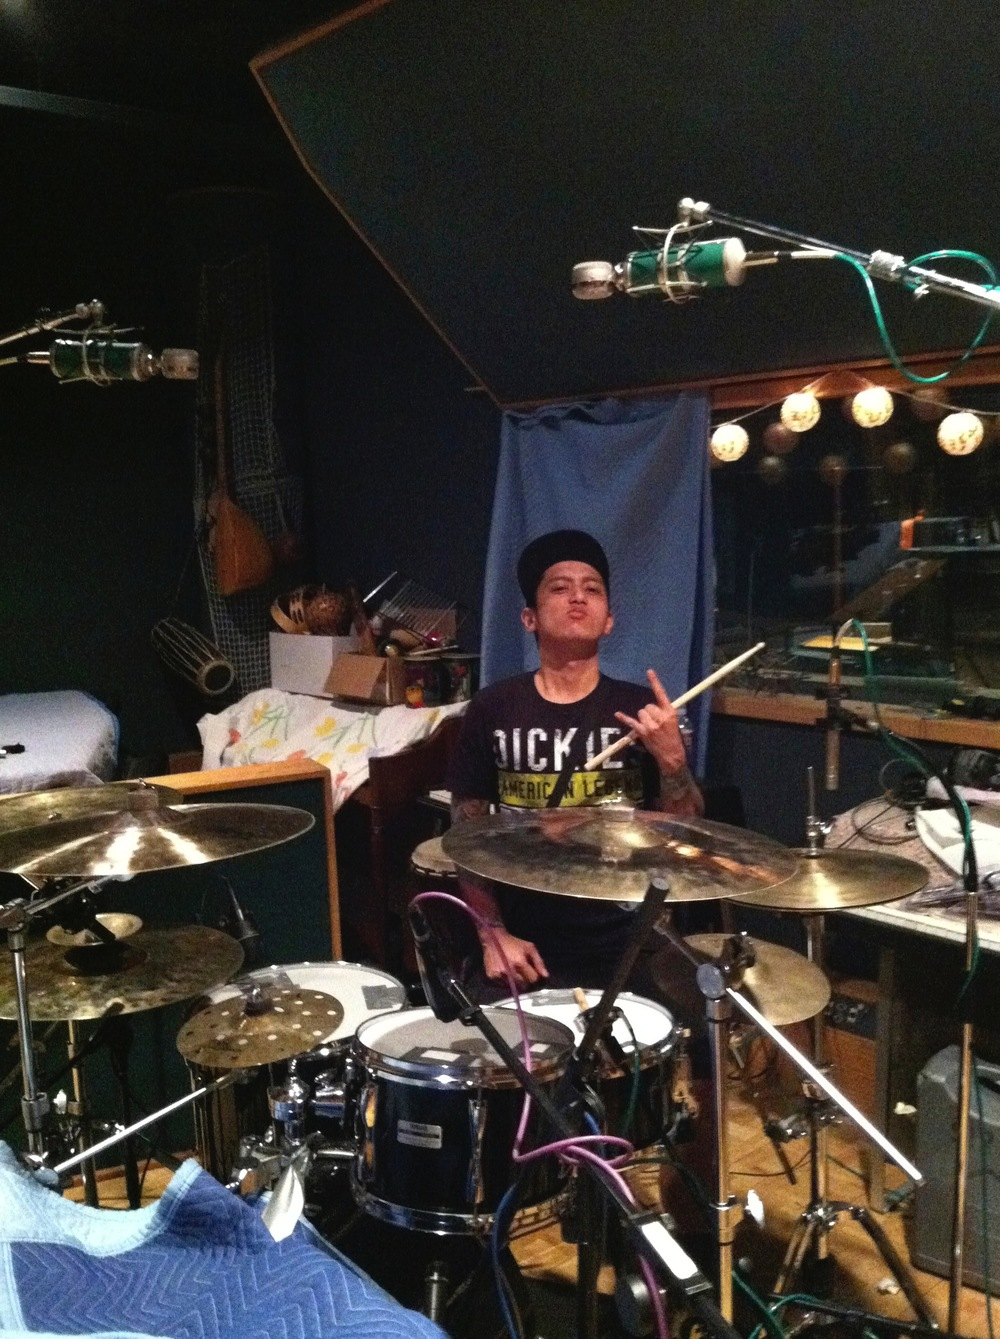 Slapshock's drummer Chi Avora behind the kit